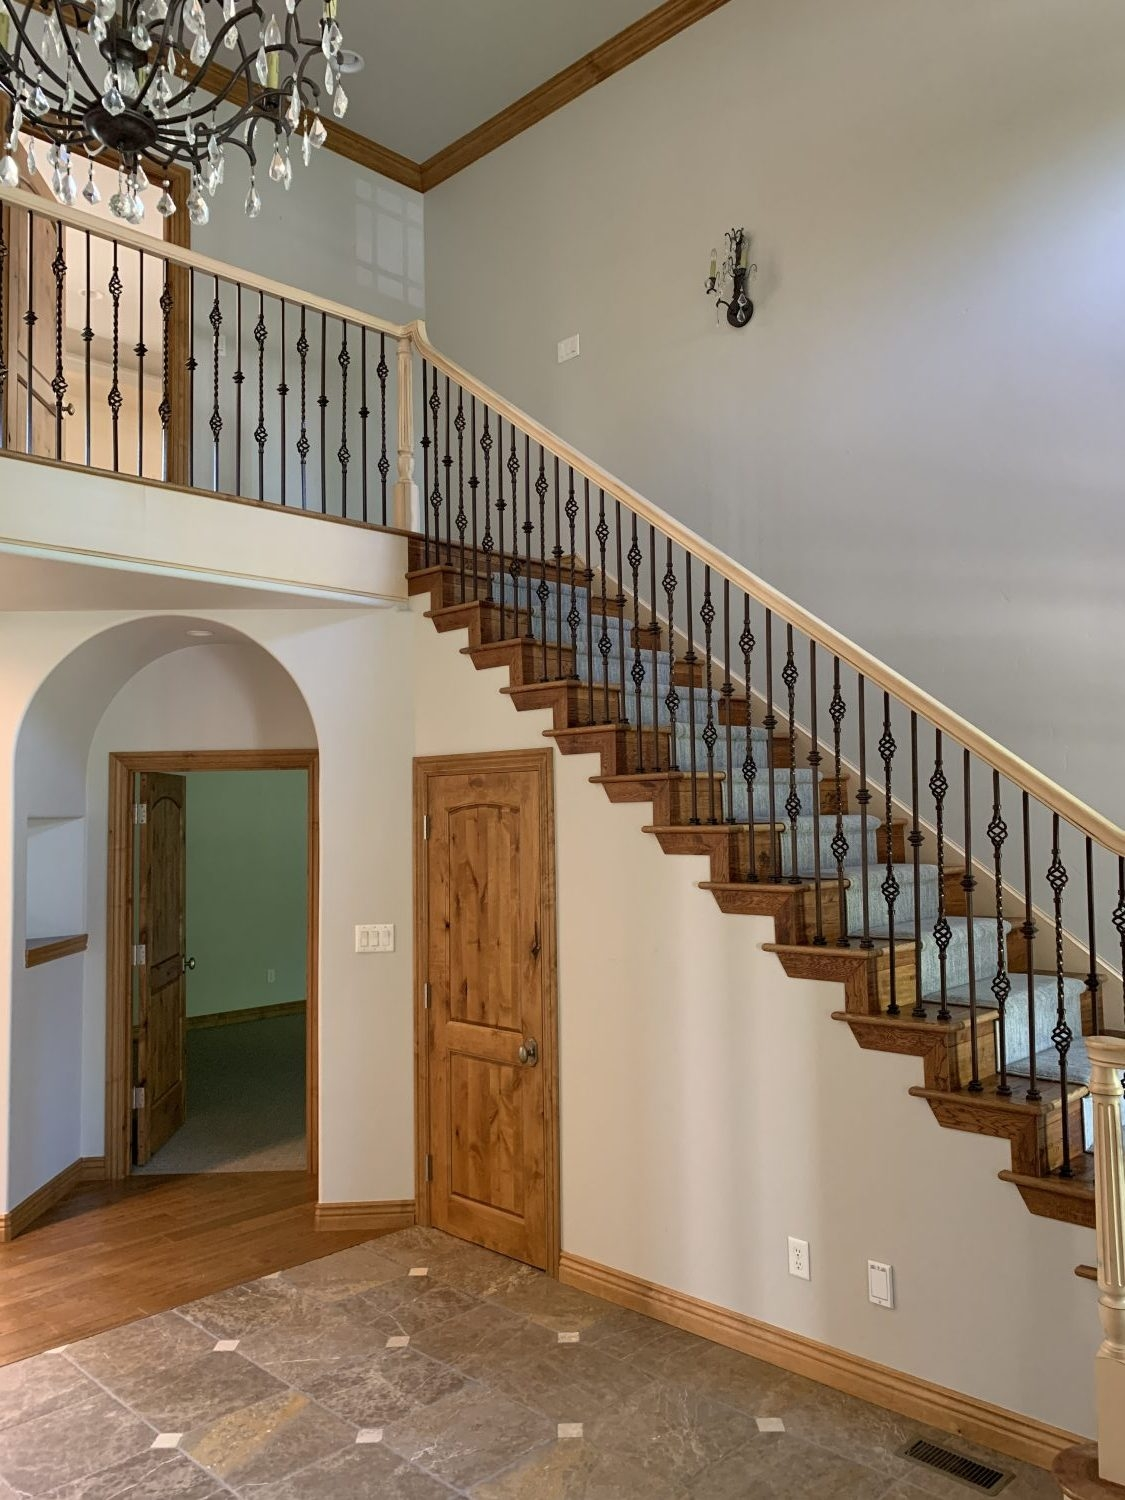 The Top Staircase Railing Inspiration Photos We Re Using To Design | Black And White Staircase Railing | Colour Combination | House | Indoor | 1920'S | Floors